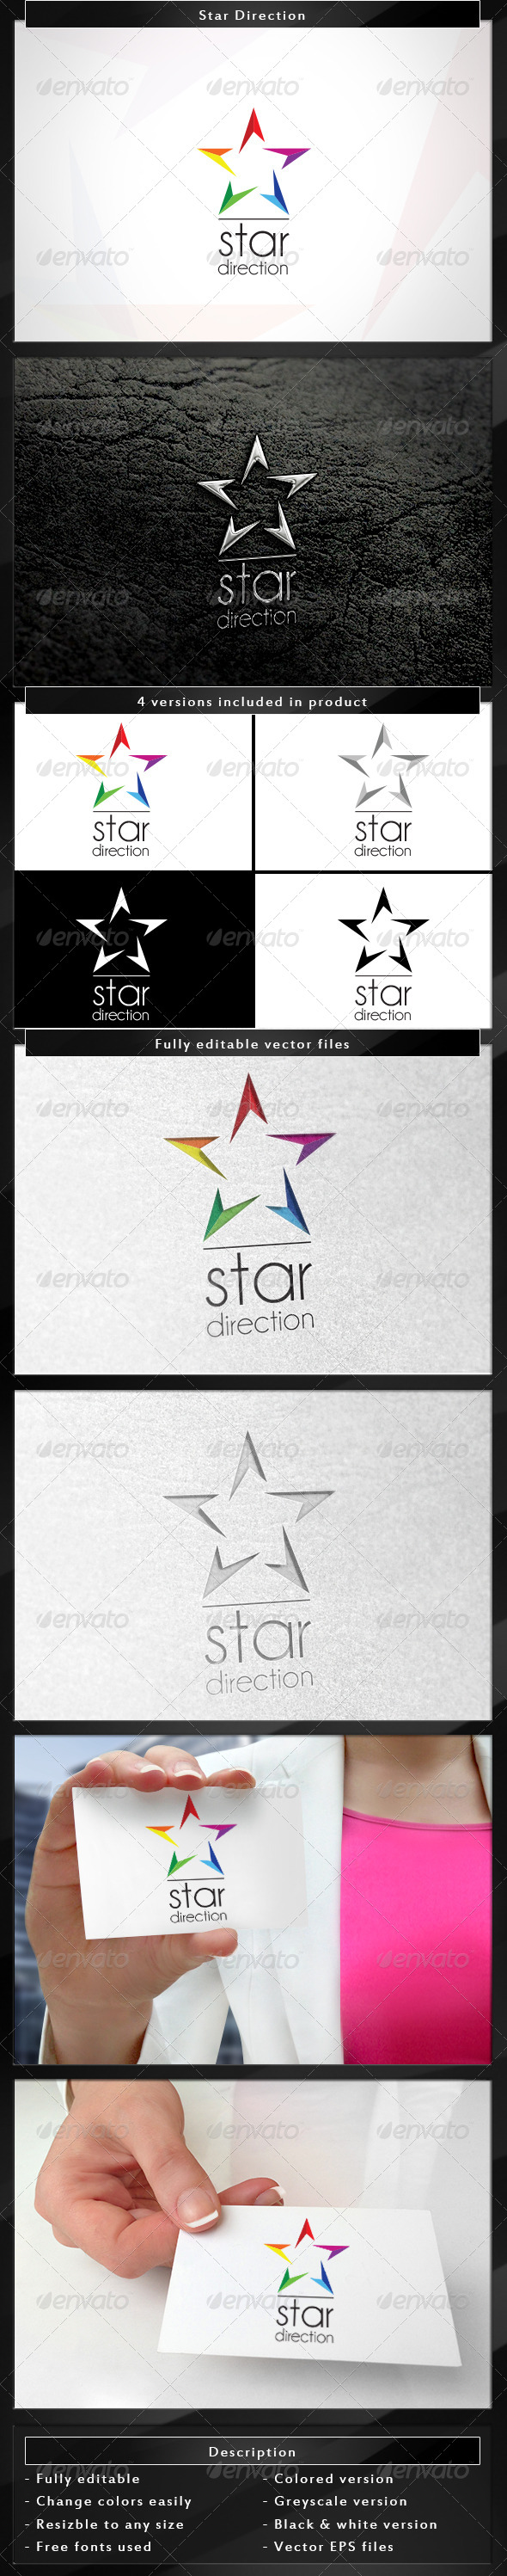 GraphicRiver Star Direction 4551798